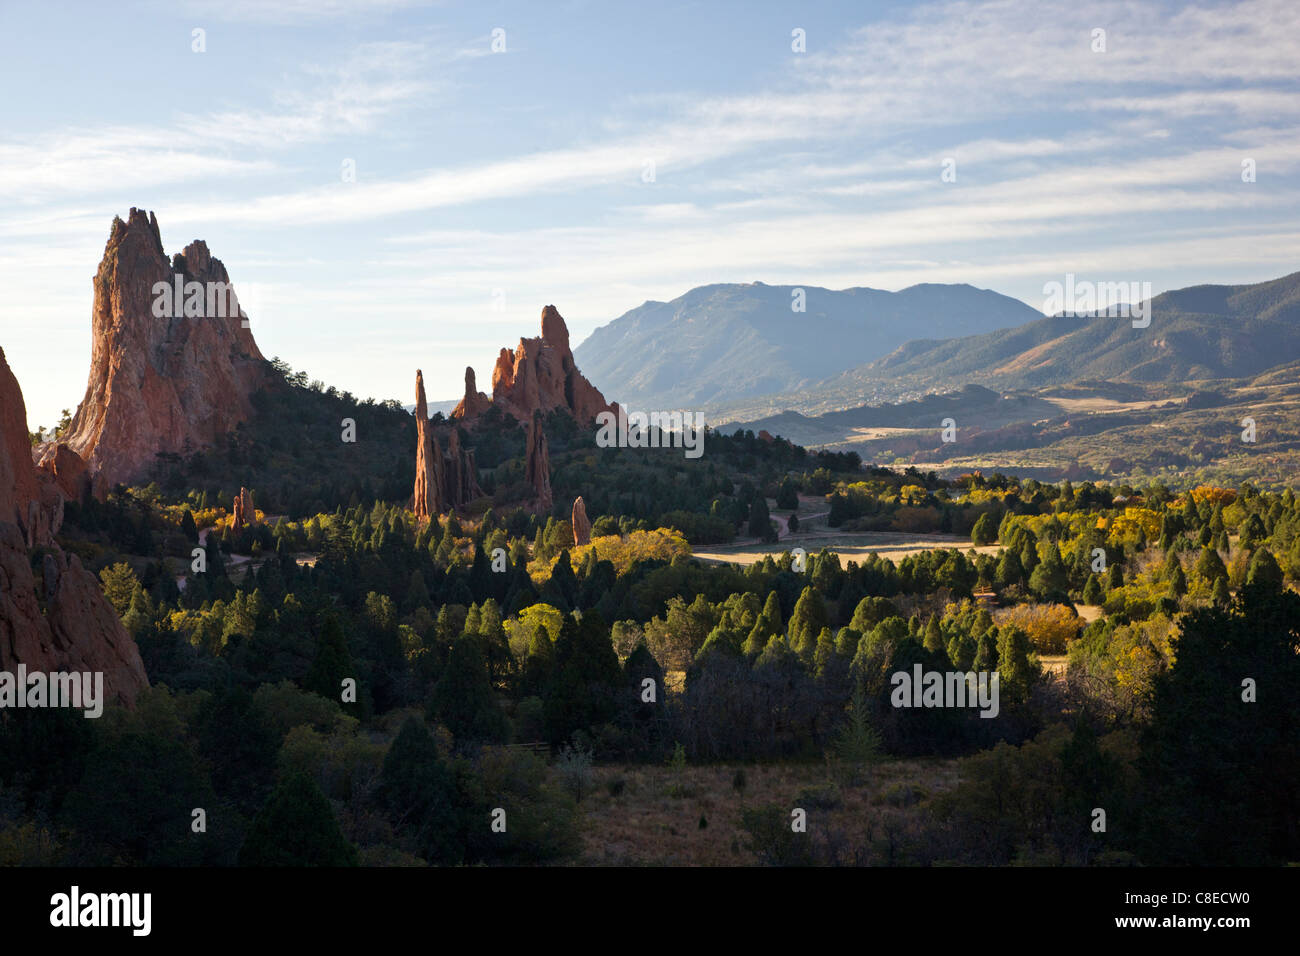 South Gateway Rock, Cathedral Spires and Three Graces, Garden of the Gods.  Nat'l Natural Landmark, Colorado - Stock Image